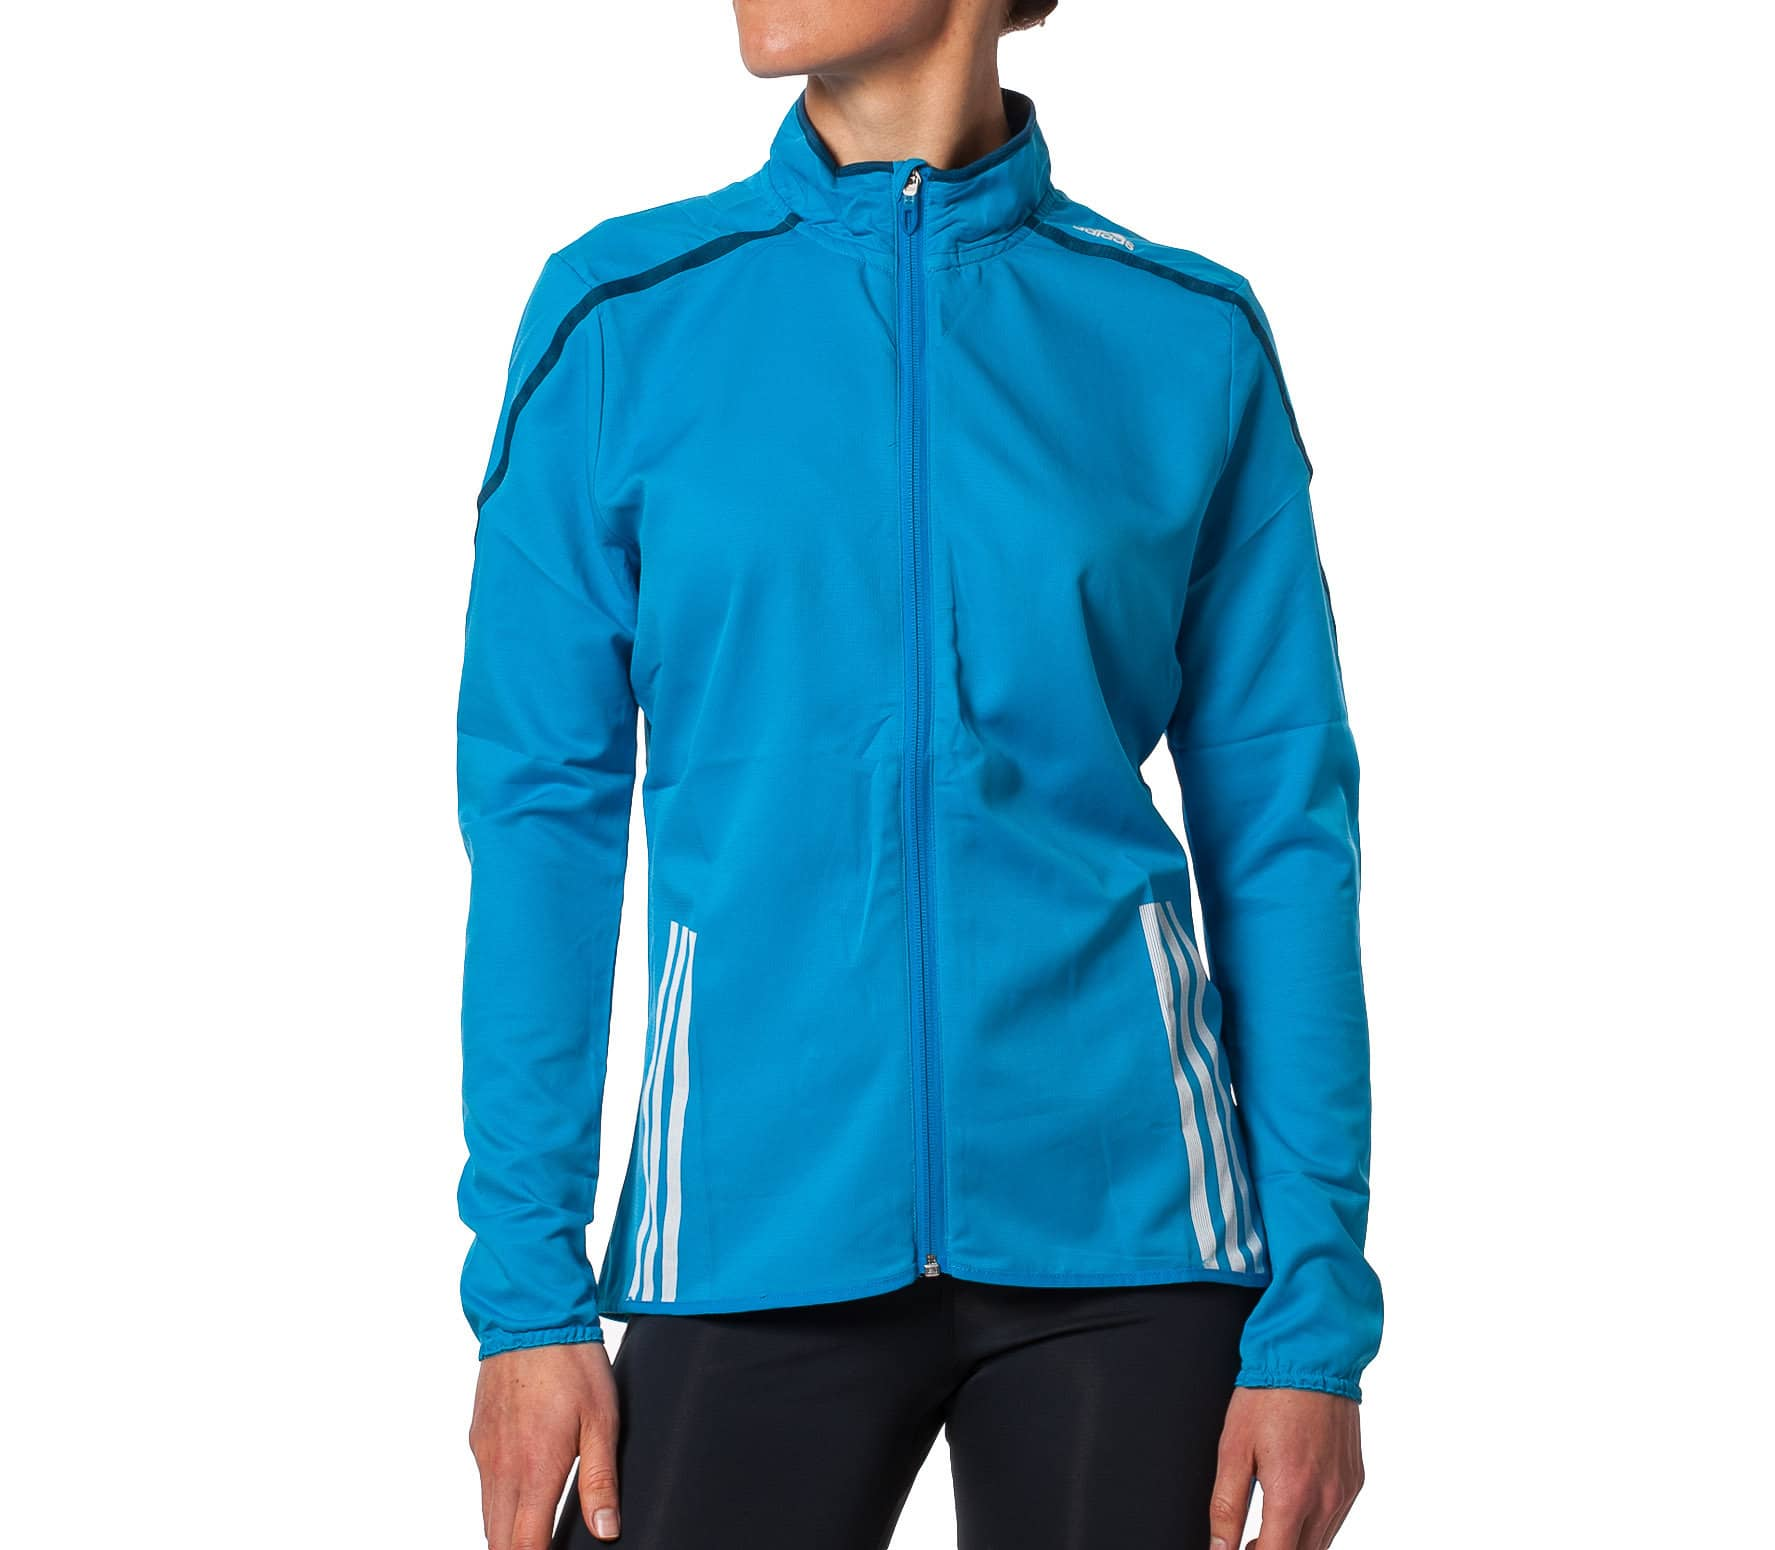 adidas adizero slim track jacket damen blau im online shop von keller sports kaufen. Black Bedroom Furniture Sets. Home Design Ideas